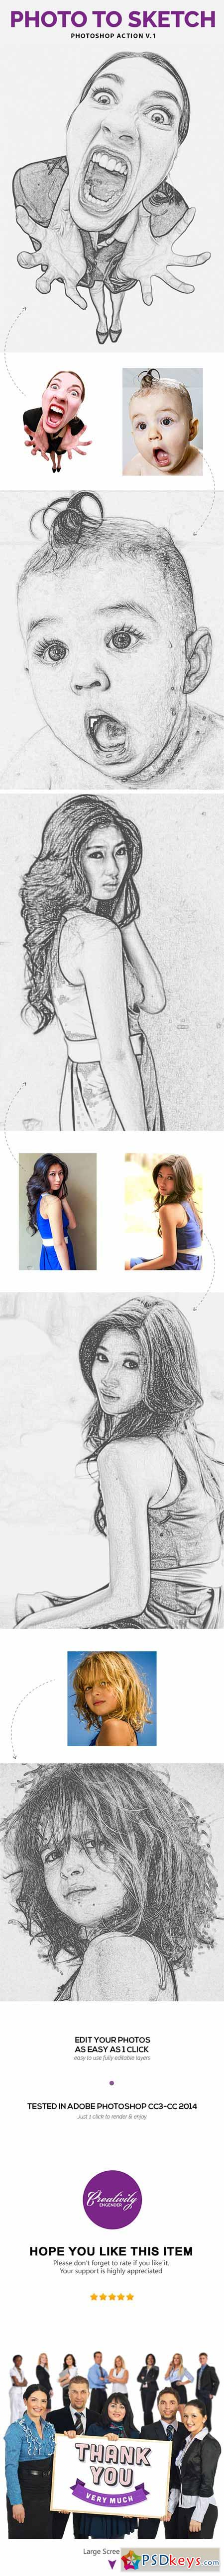 Photo to Sketch V.1 - Photoshop Action 11454702